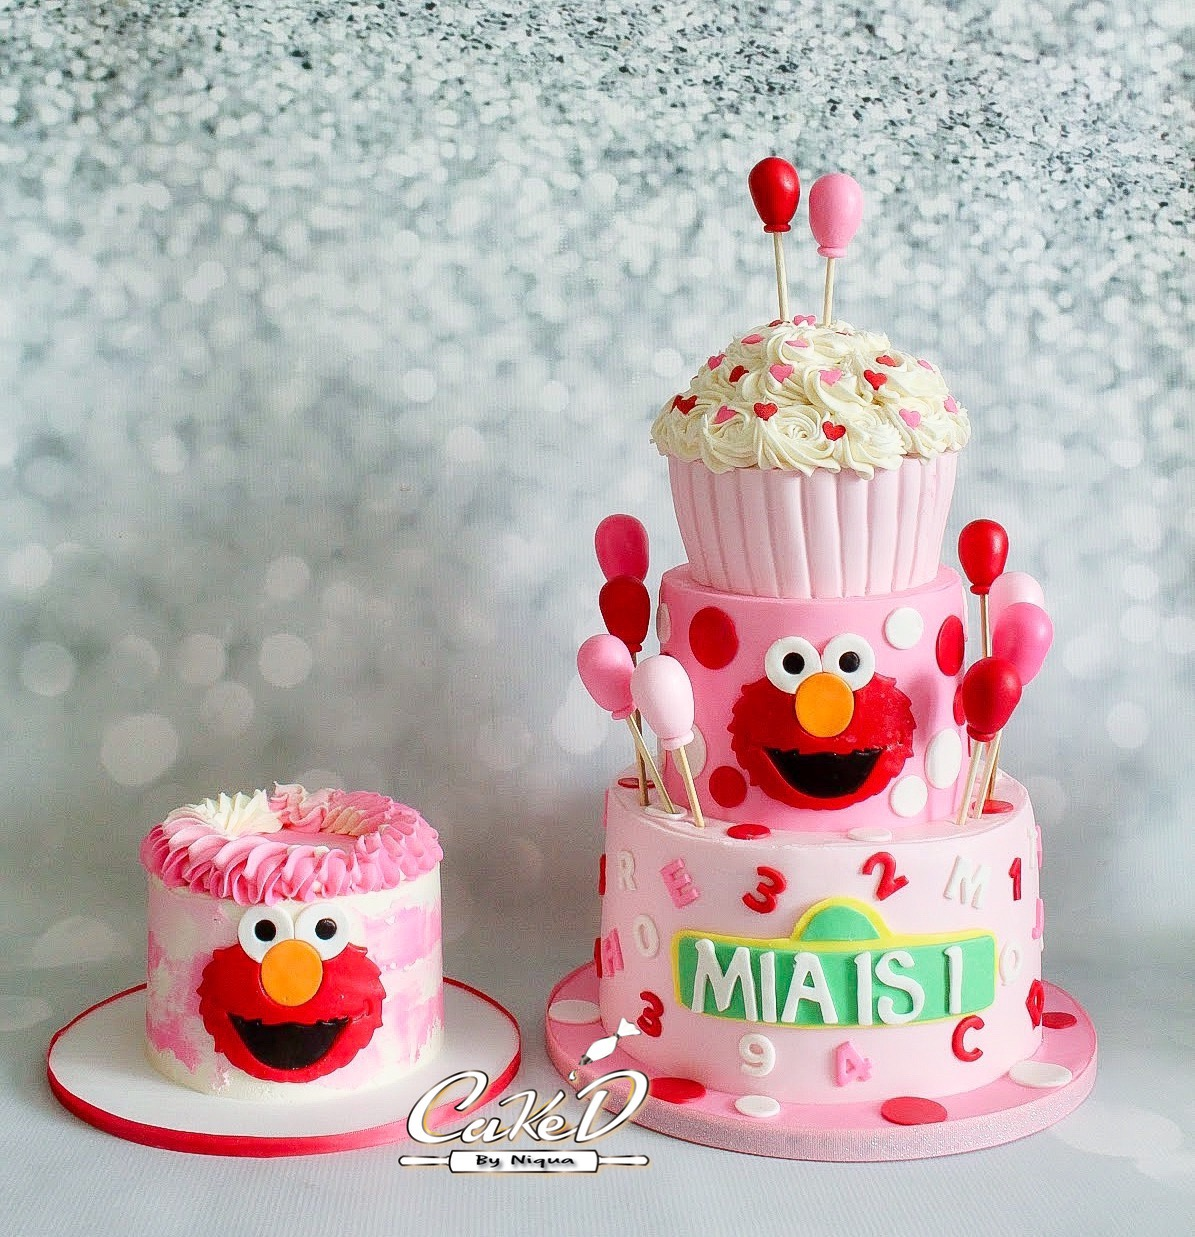 Pink Elmo Cake and Smash Cake